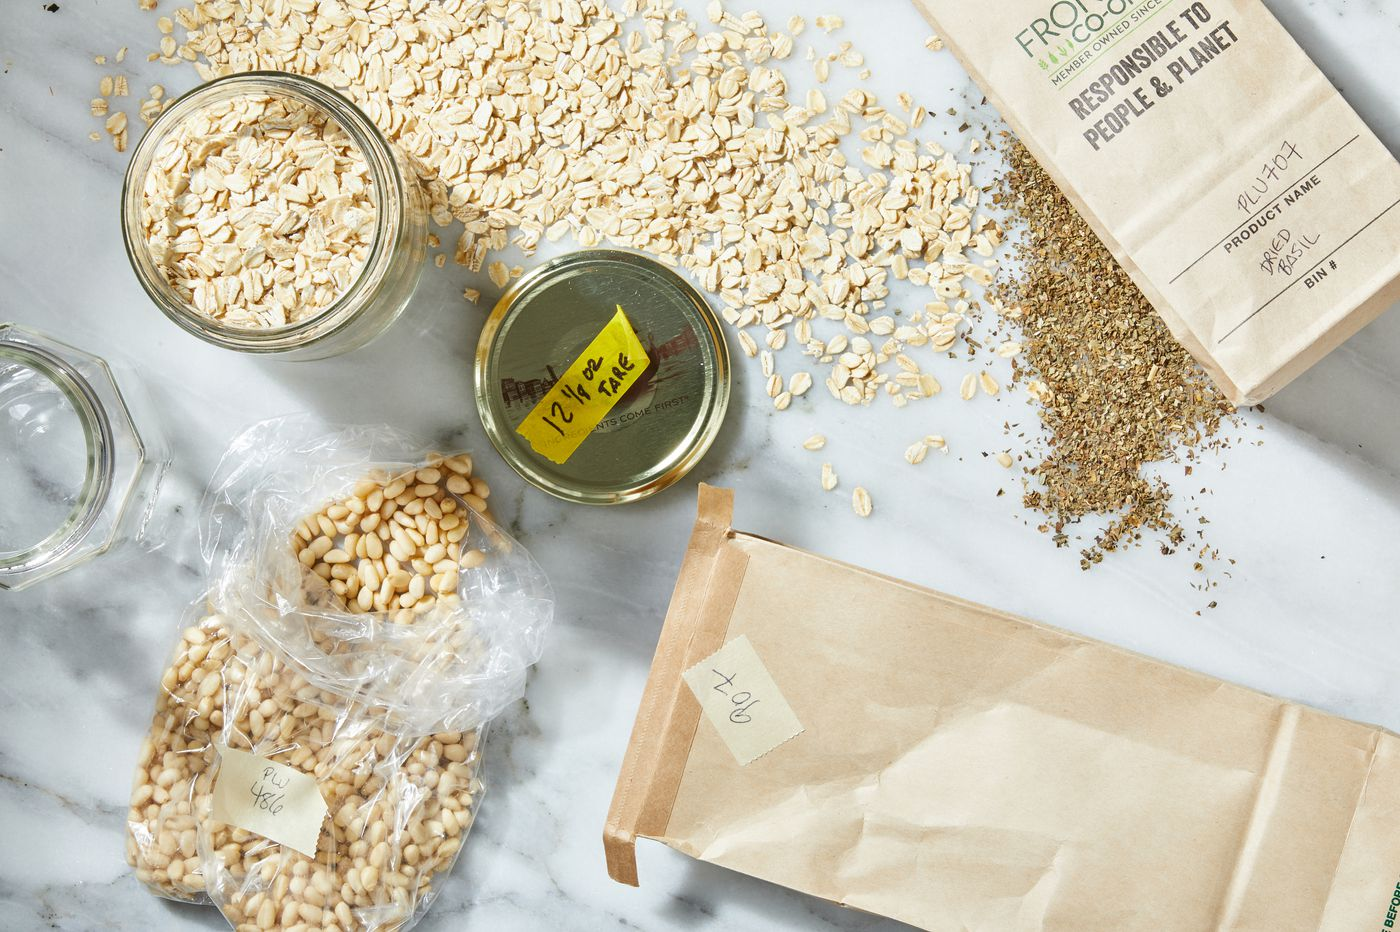 Today's bulk-bin aisle is more than oats and trail mix. Here's how to make the most of it.